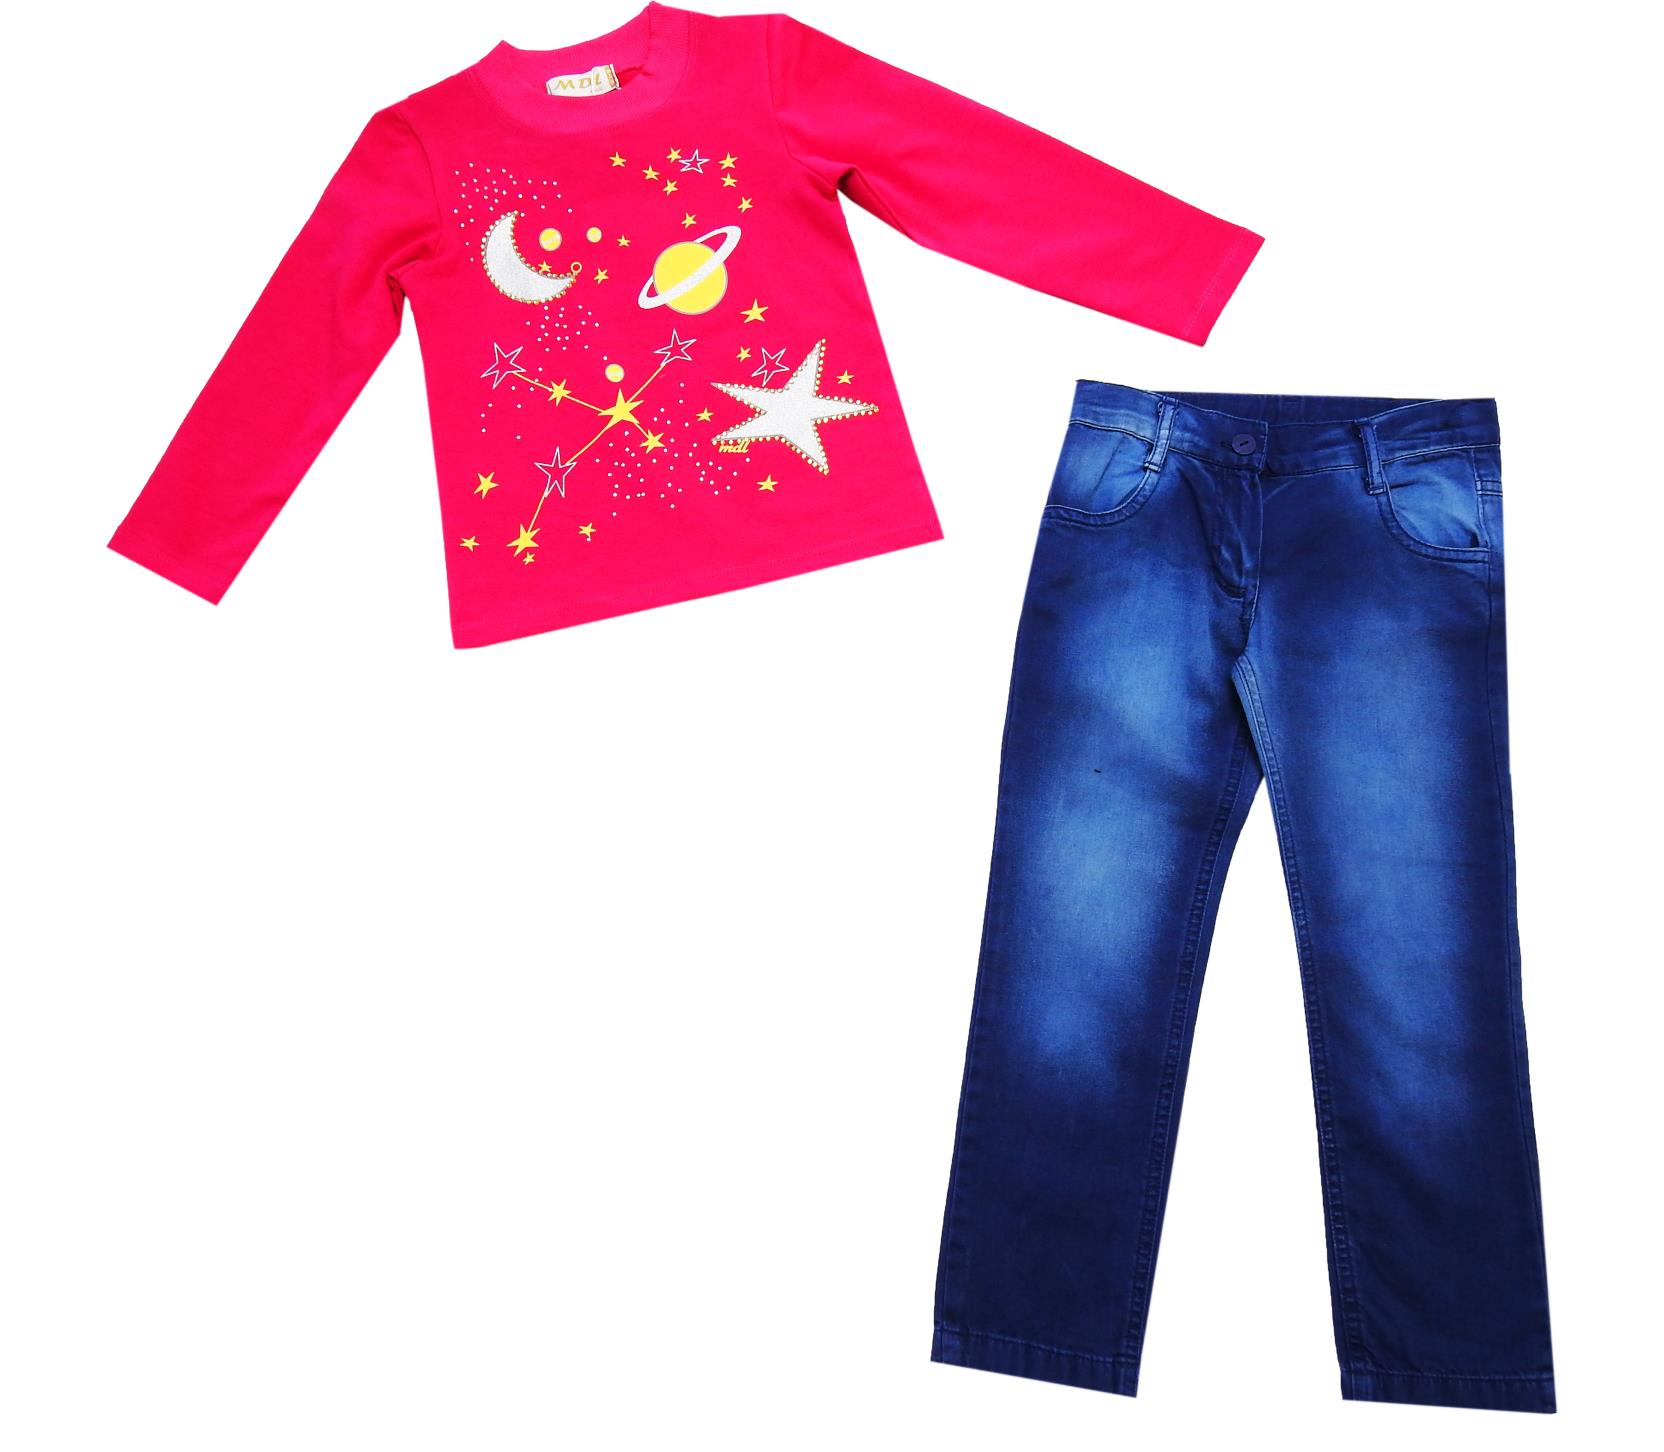 WHOLESALE MOON AND STARS PRINT LONG SLEEVE T-SHIRT AND JEANS PANT FOR GIRL (5-6-7 AGE)